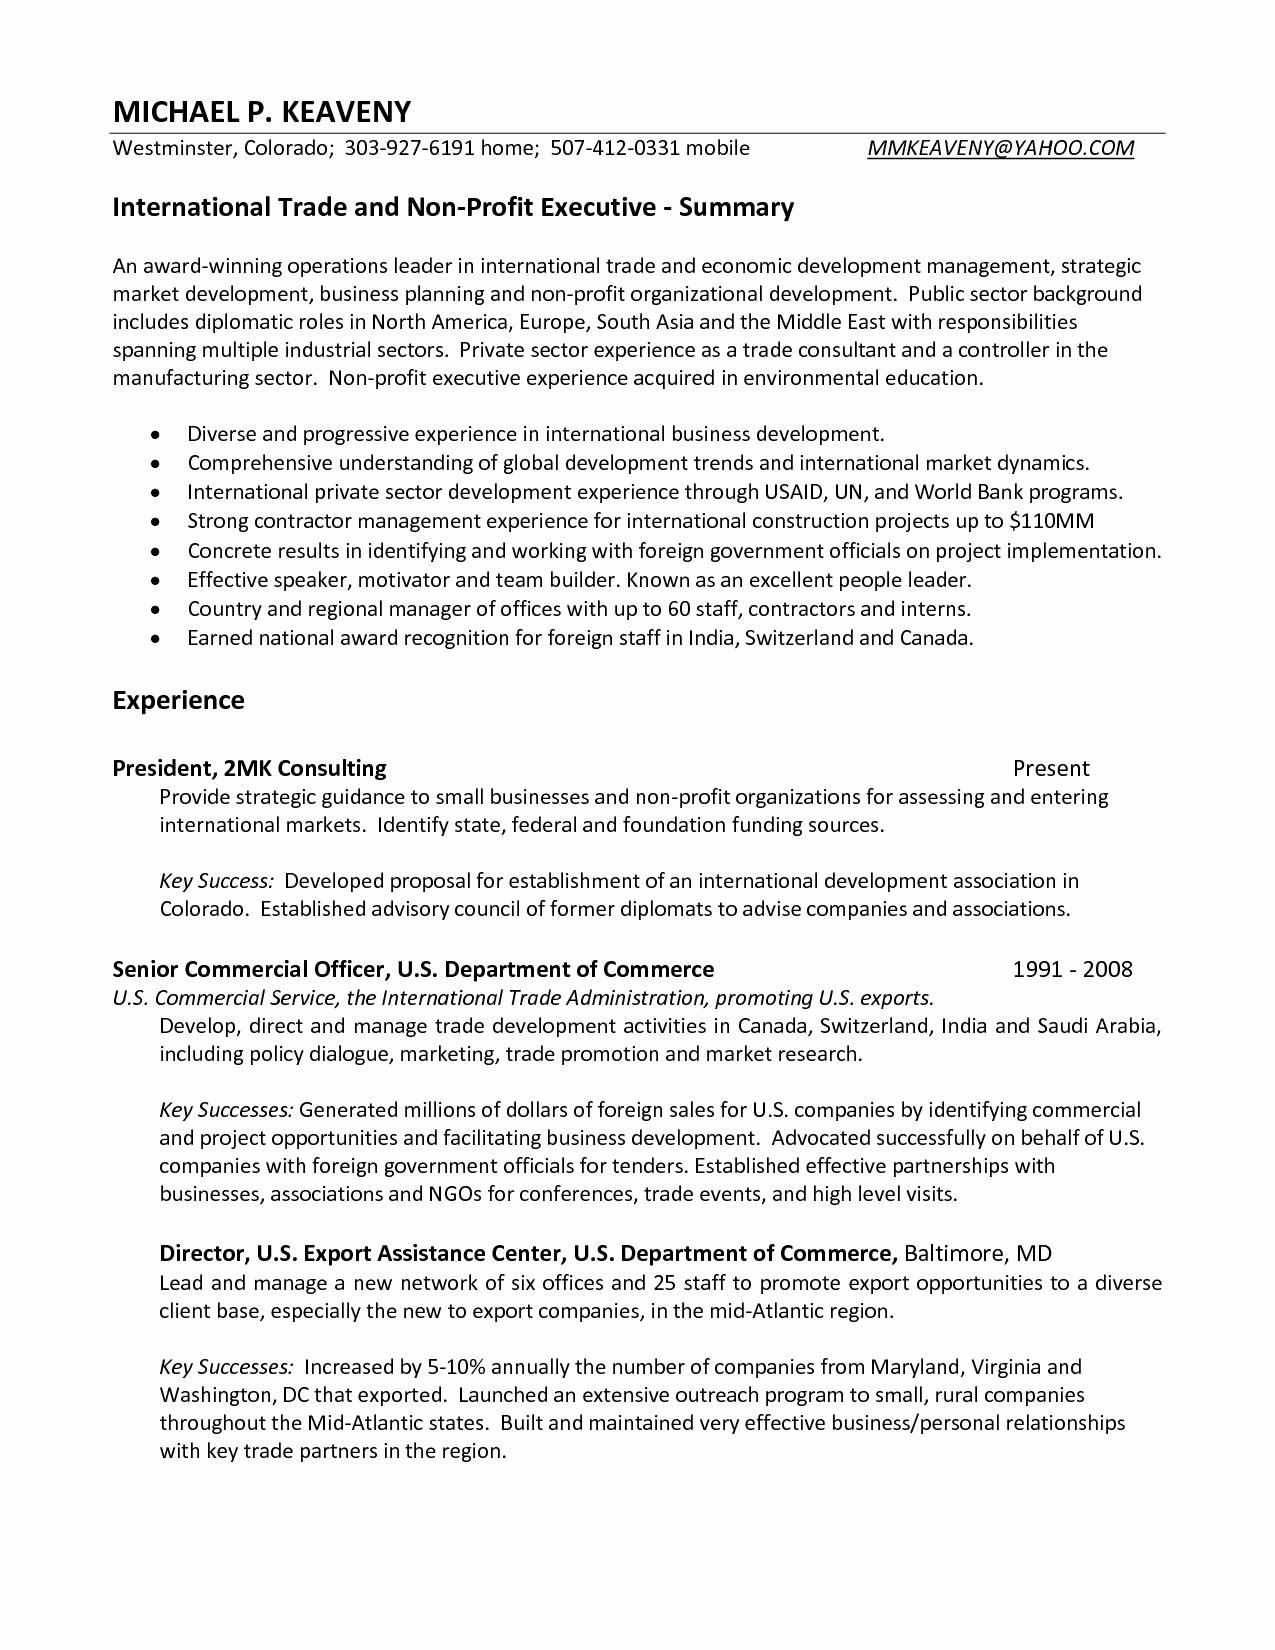 Executive Summary Resume Samples - Business Resume Examples Fresh Resume or Cv Unique American Resume